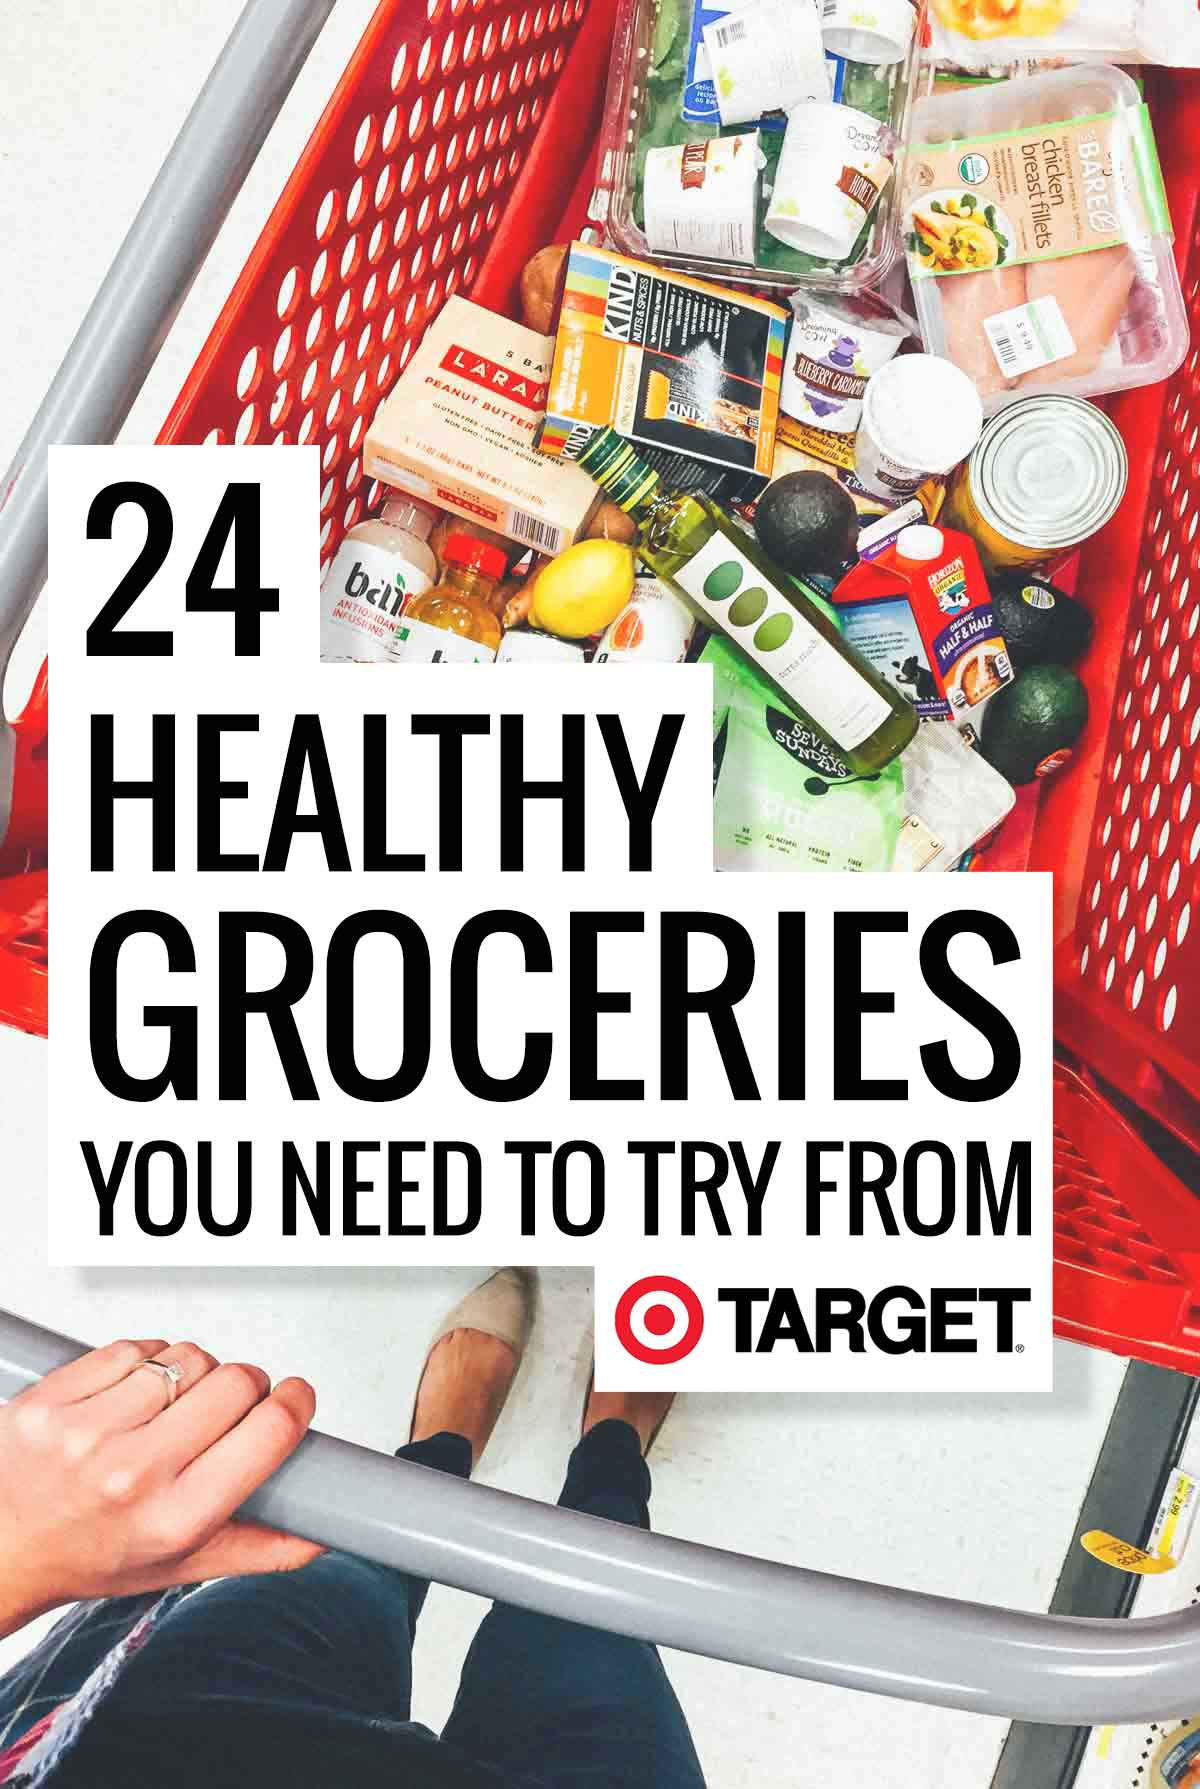 Healthy Snacks At Target  24 Healthy Groceries You Need To Try From Tar Pinch